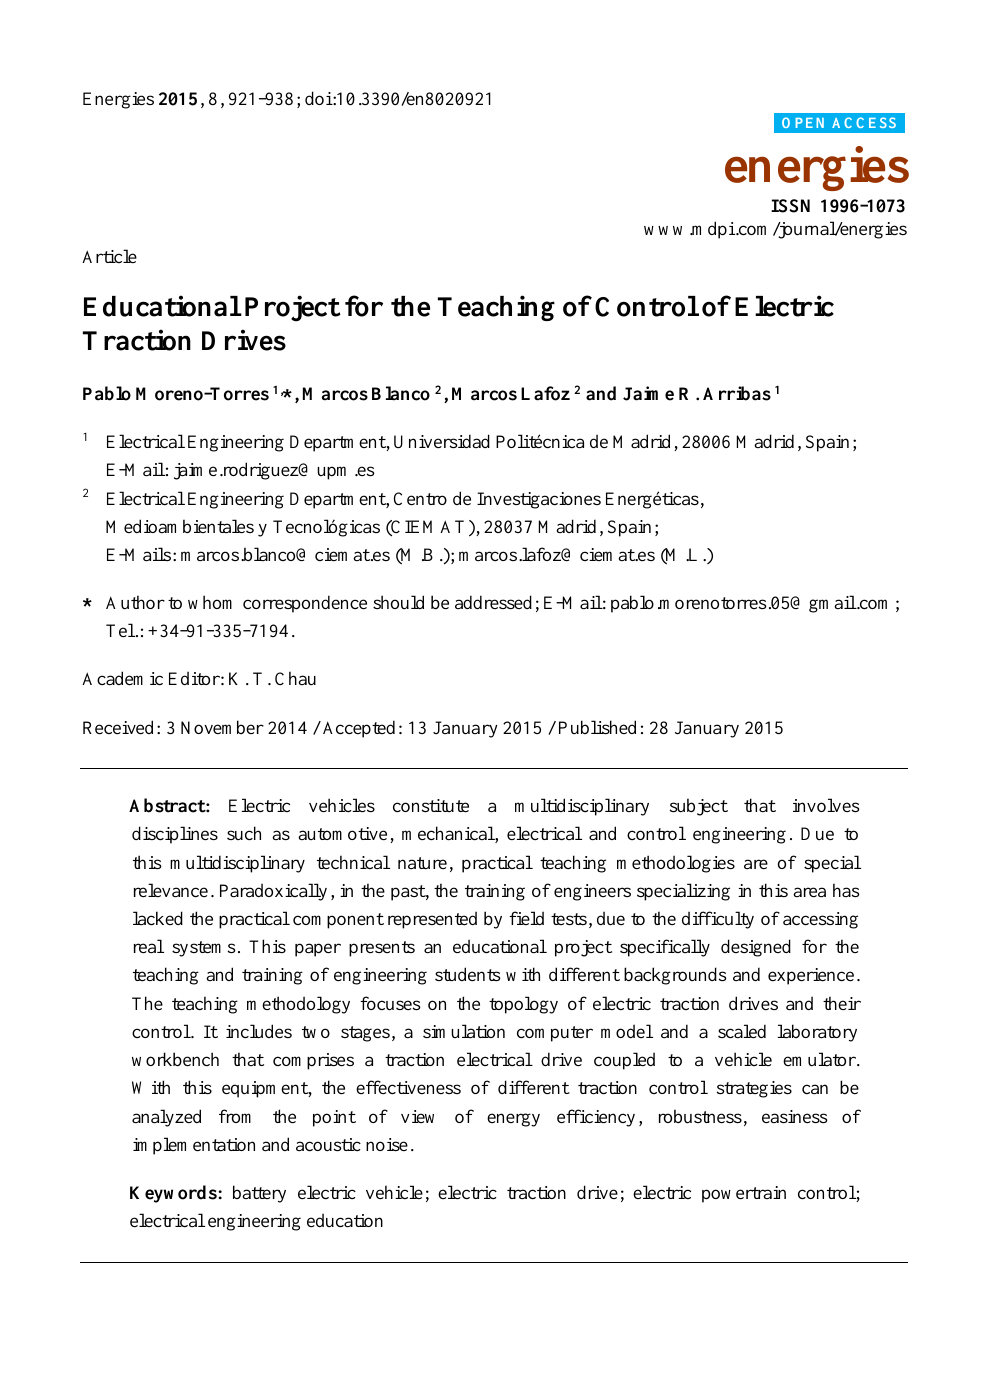 Educational Project for the Teaching of Control of Electric